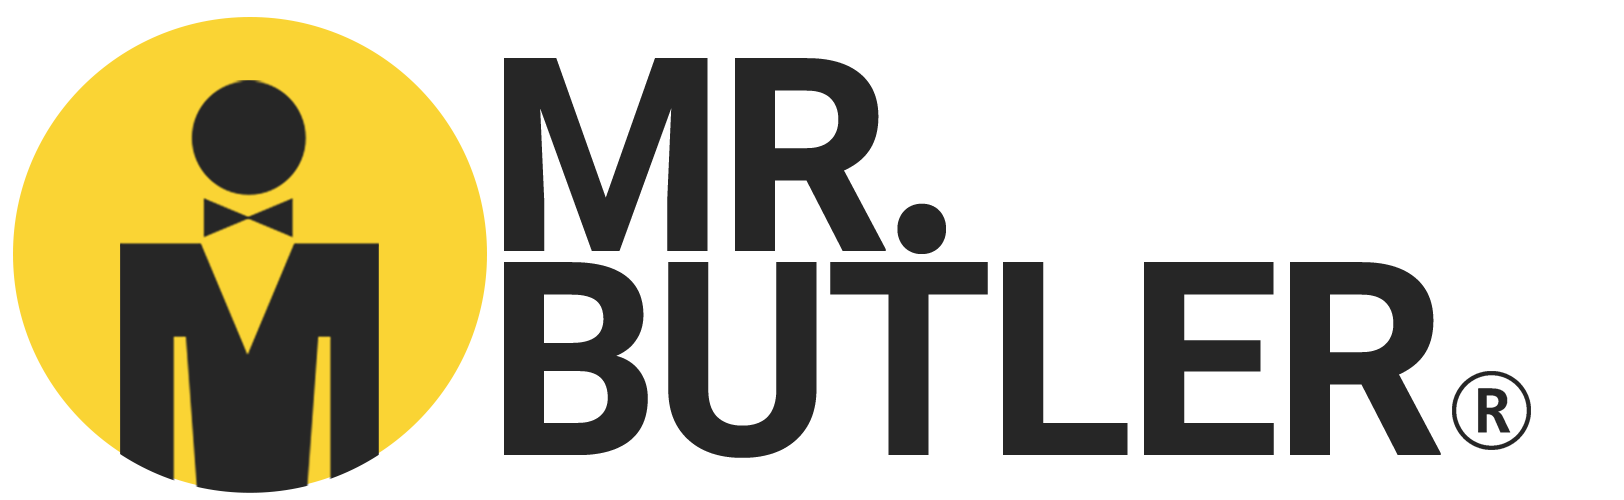 Mr. Butler Logo